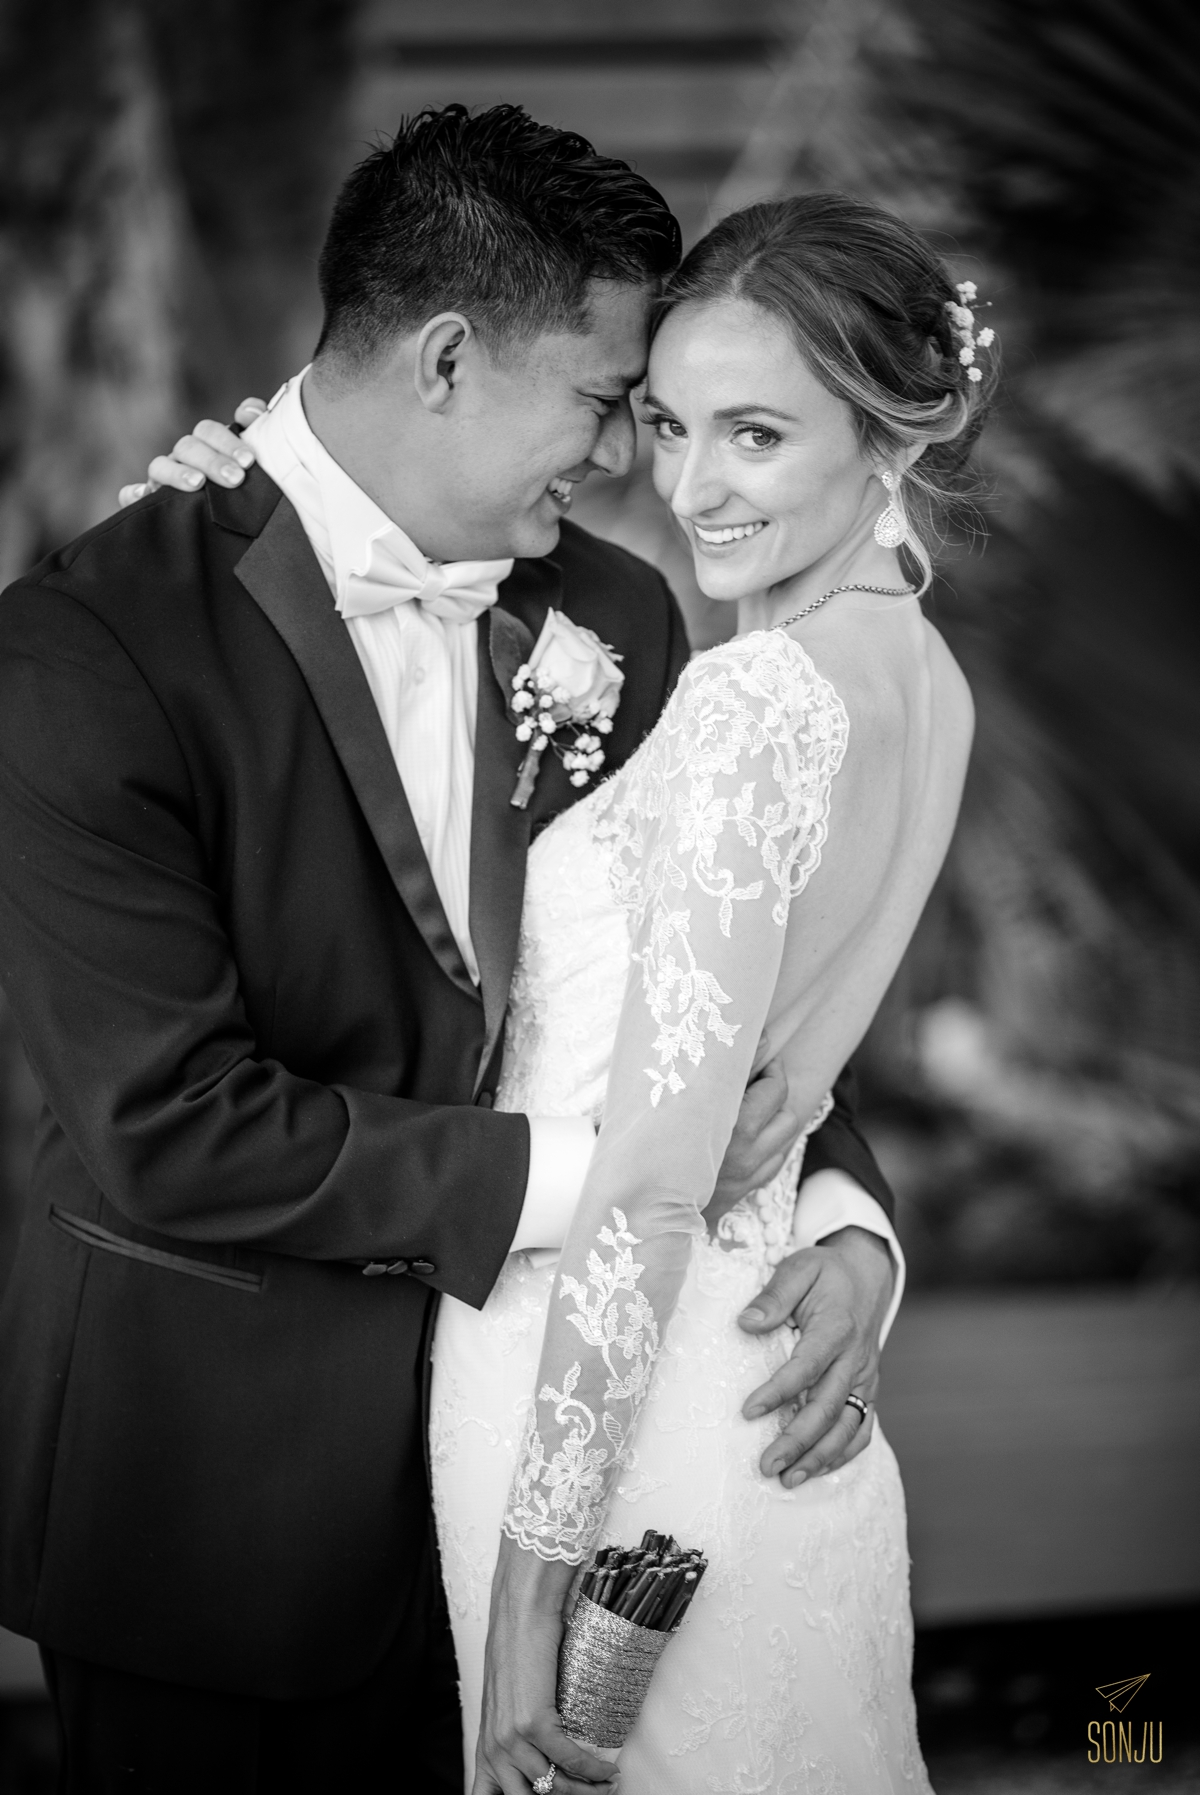 Bride and groom portrait at the Historic Stranahan House & Museum in Ft Lauderdale Florida